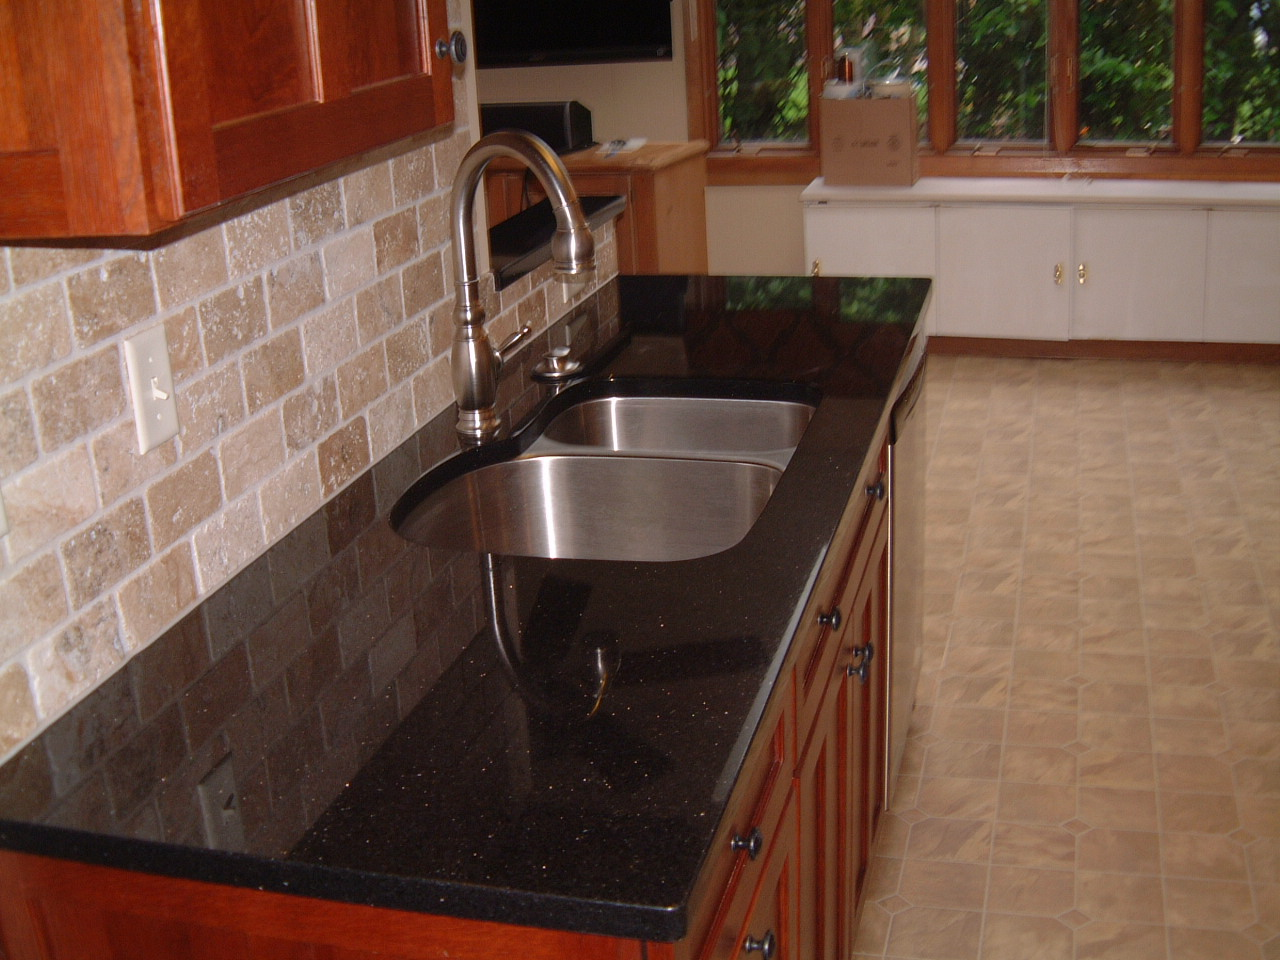 springfield kitchen project complete stone kitchen sink Springfield Kitchen Remodel Springfield Kitchen Remodel